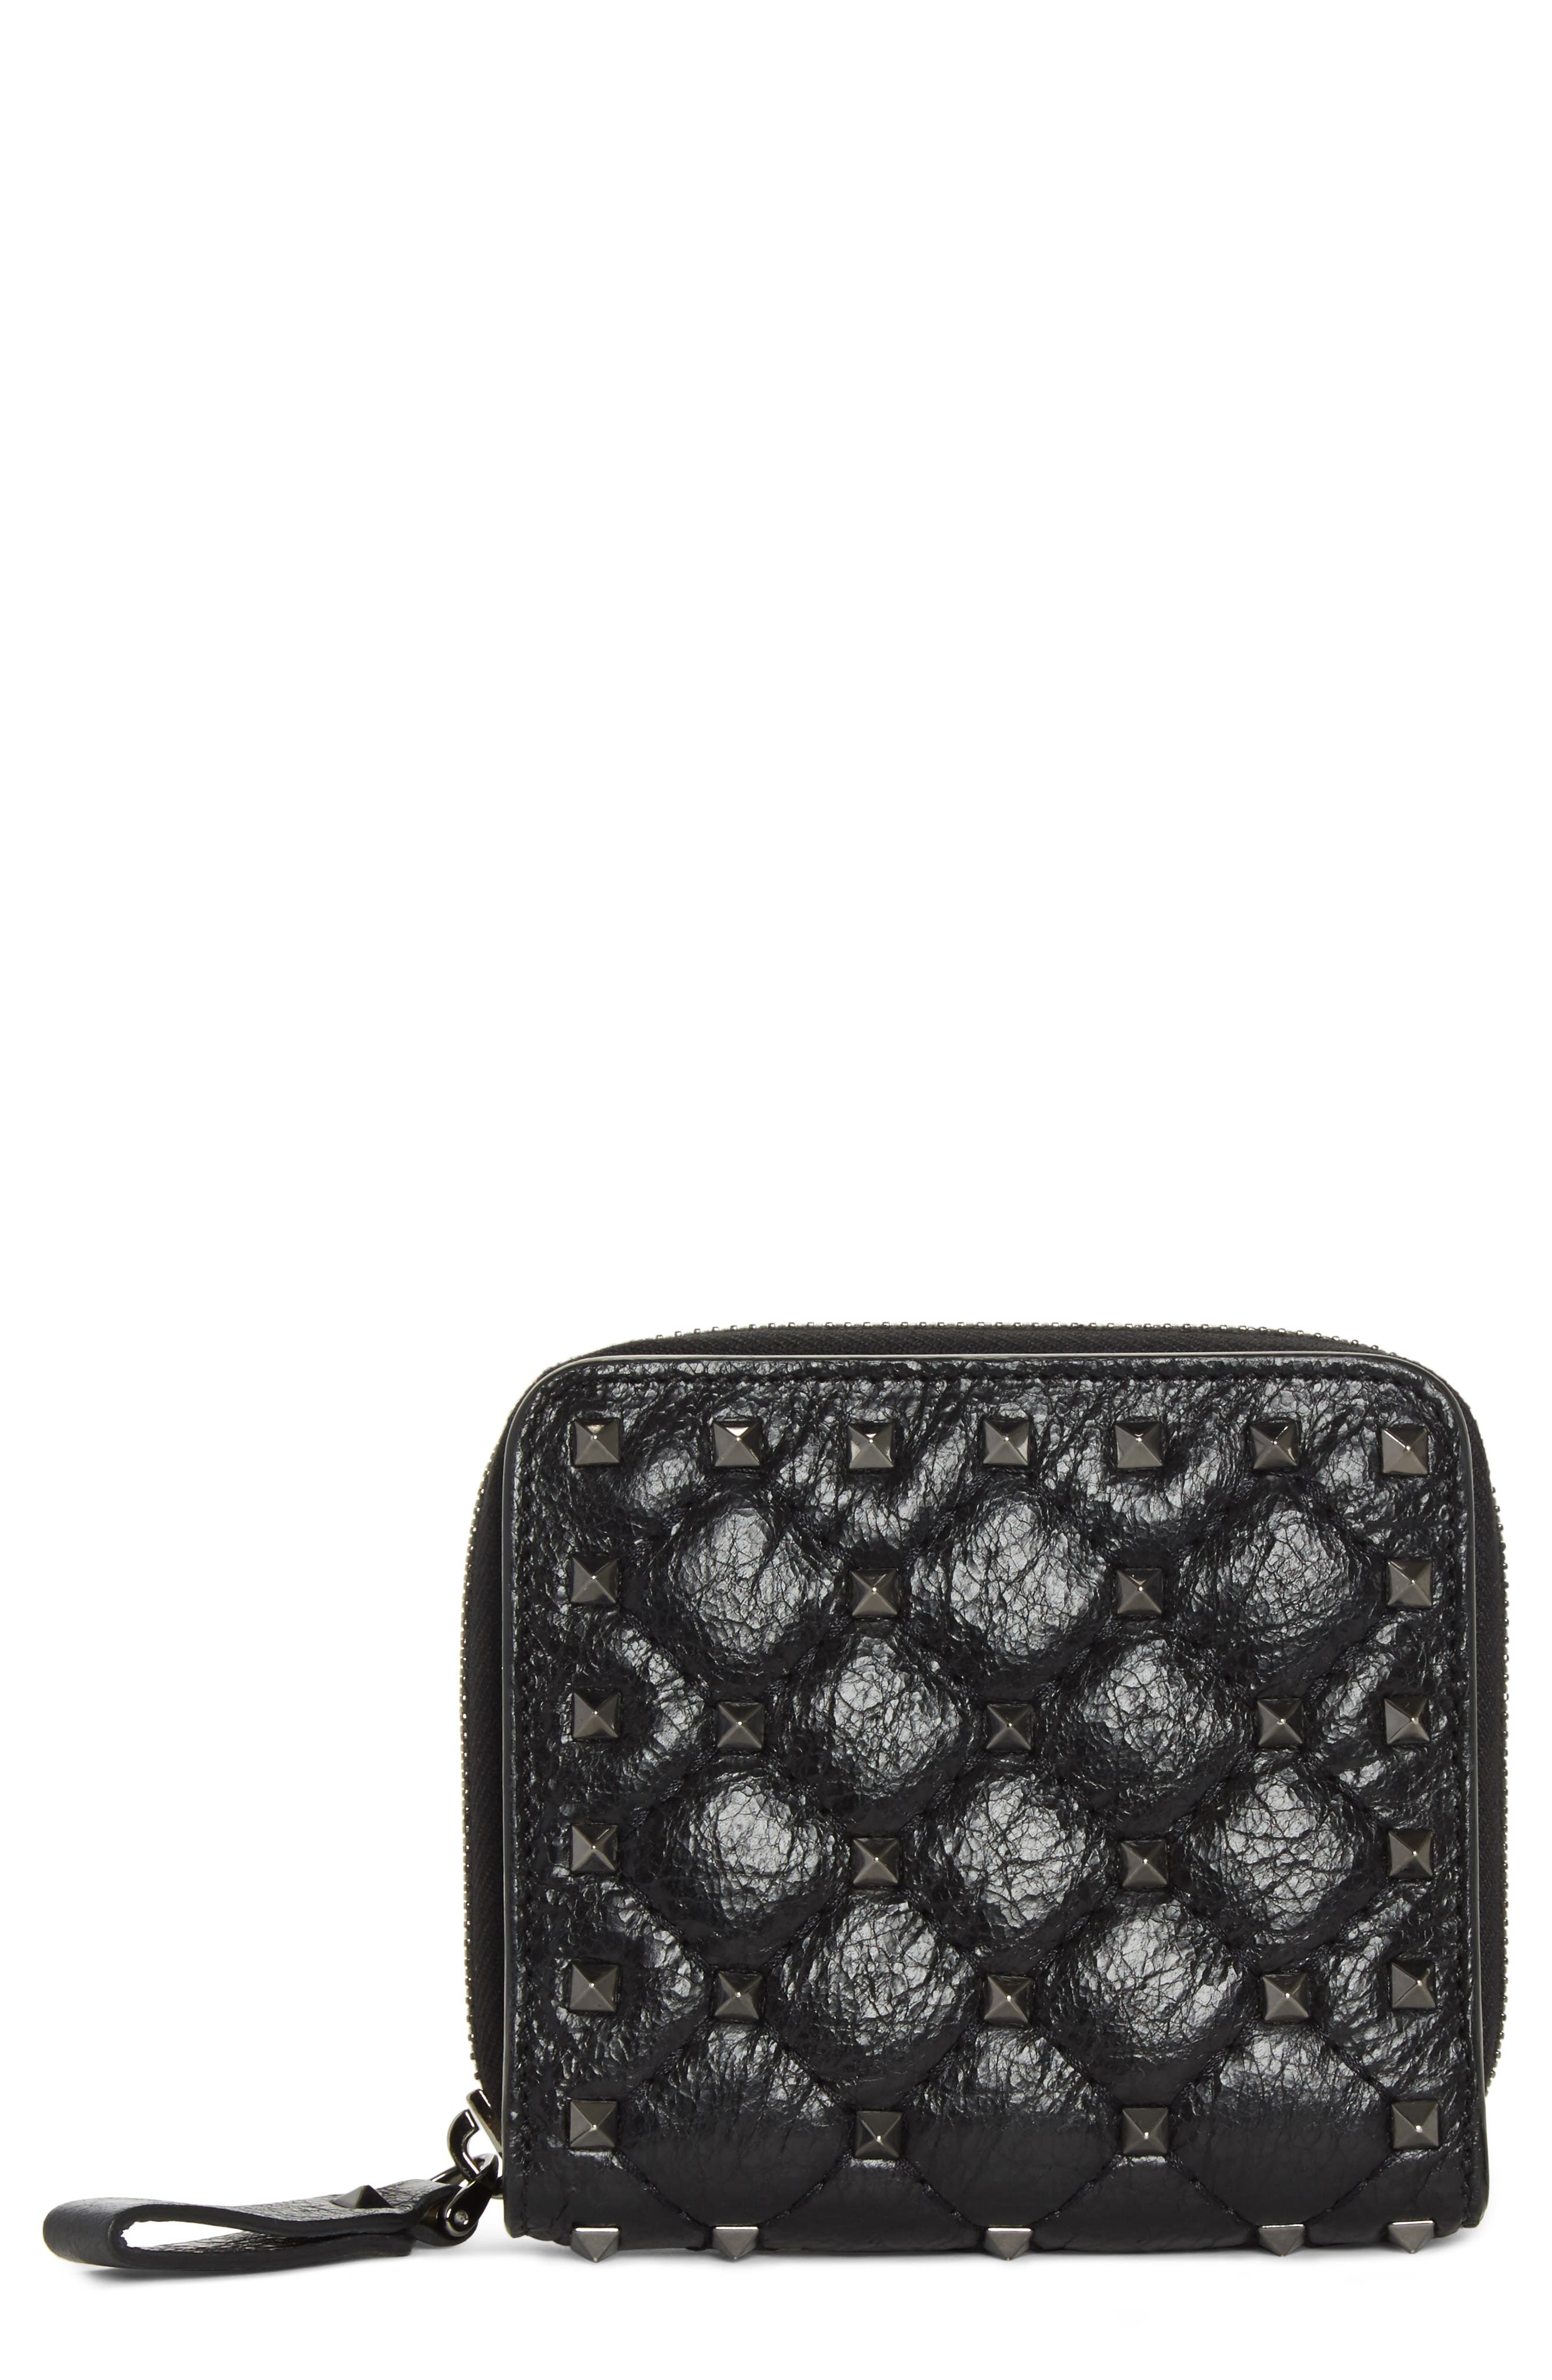 Alternate Image 1 Selected - VALENTINO GARAVANI Rockstud Leather French Wallet